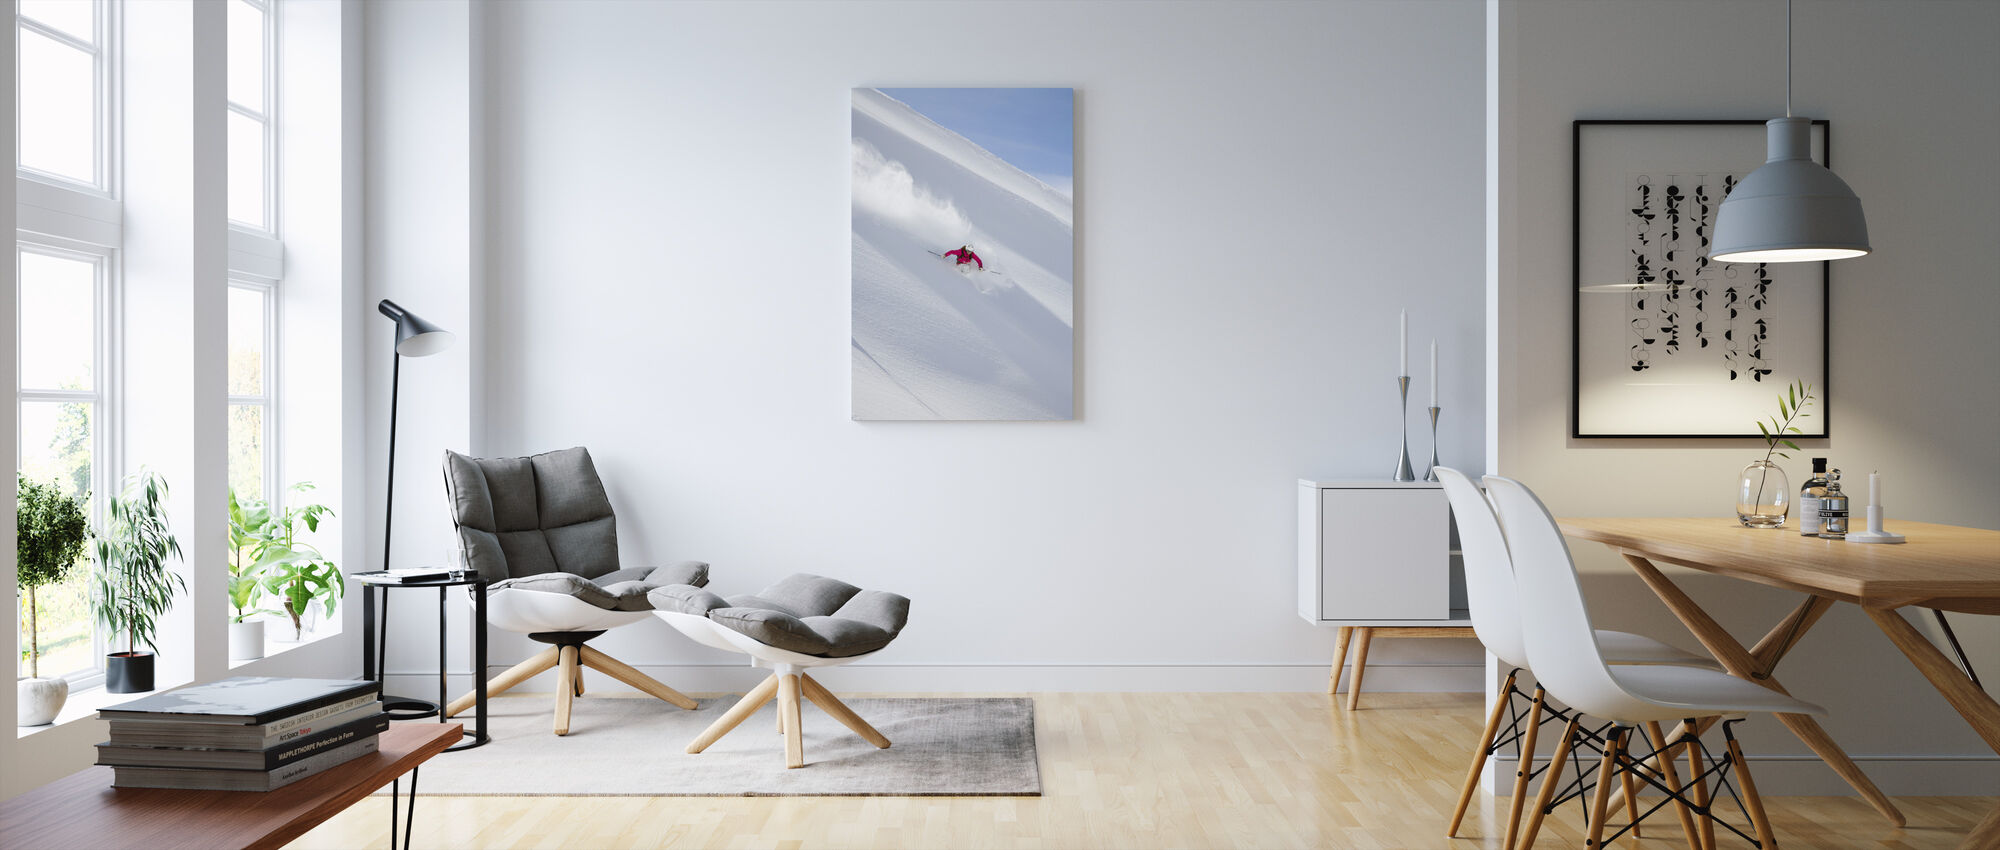 Skiing in Chamonix, France - Canvas print - Living Room